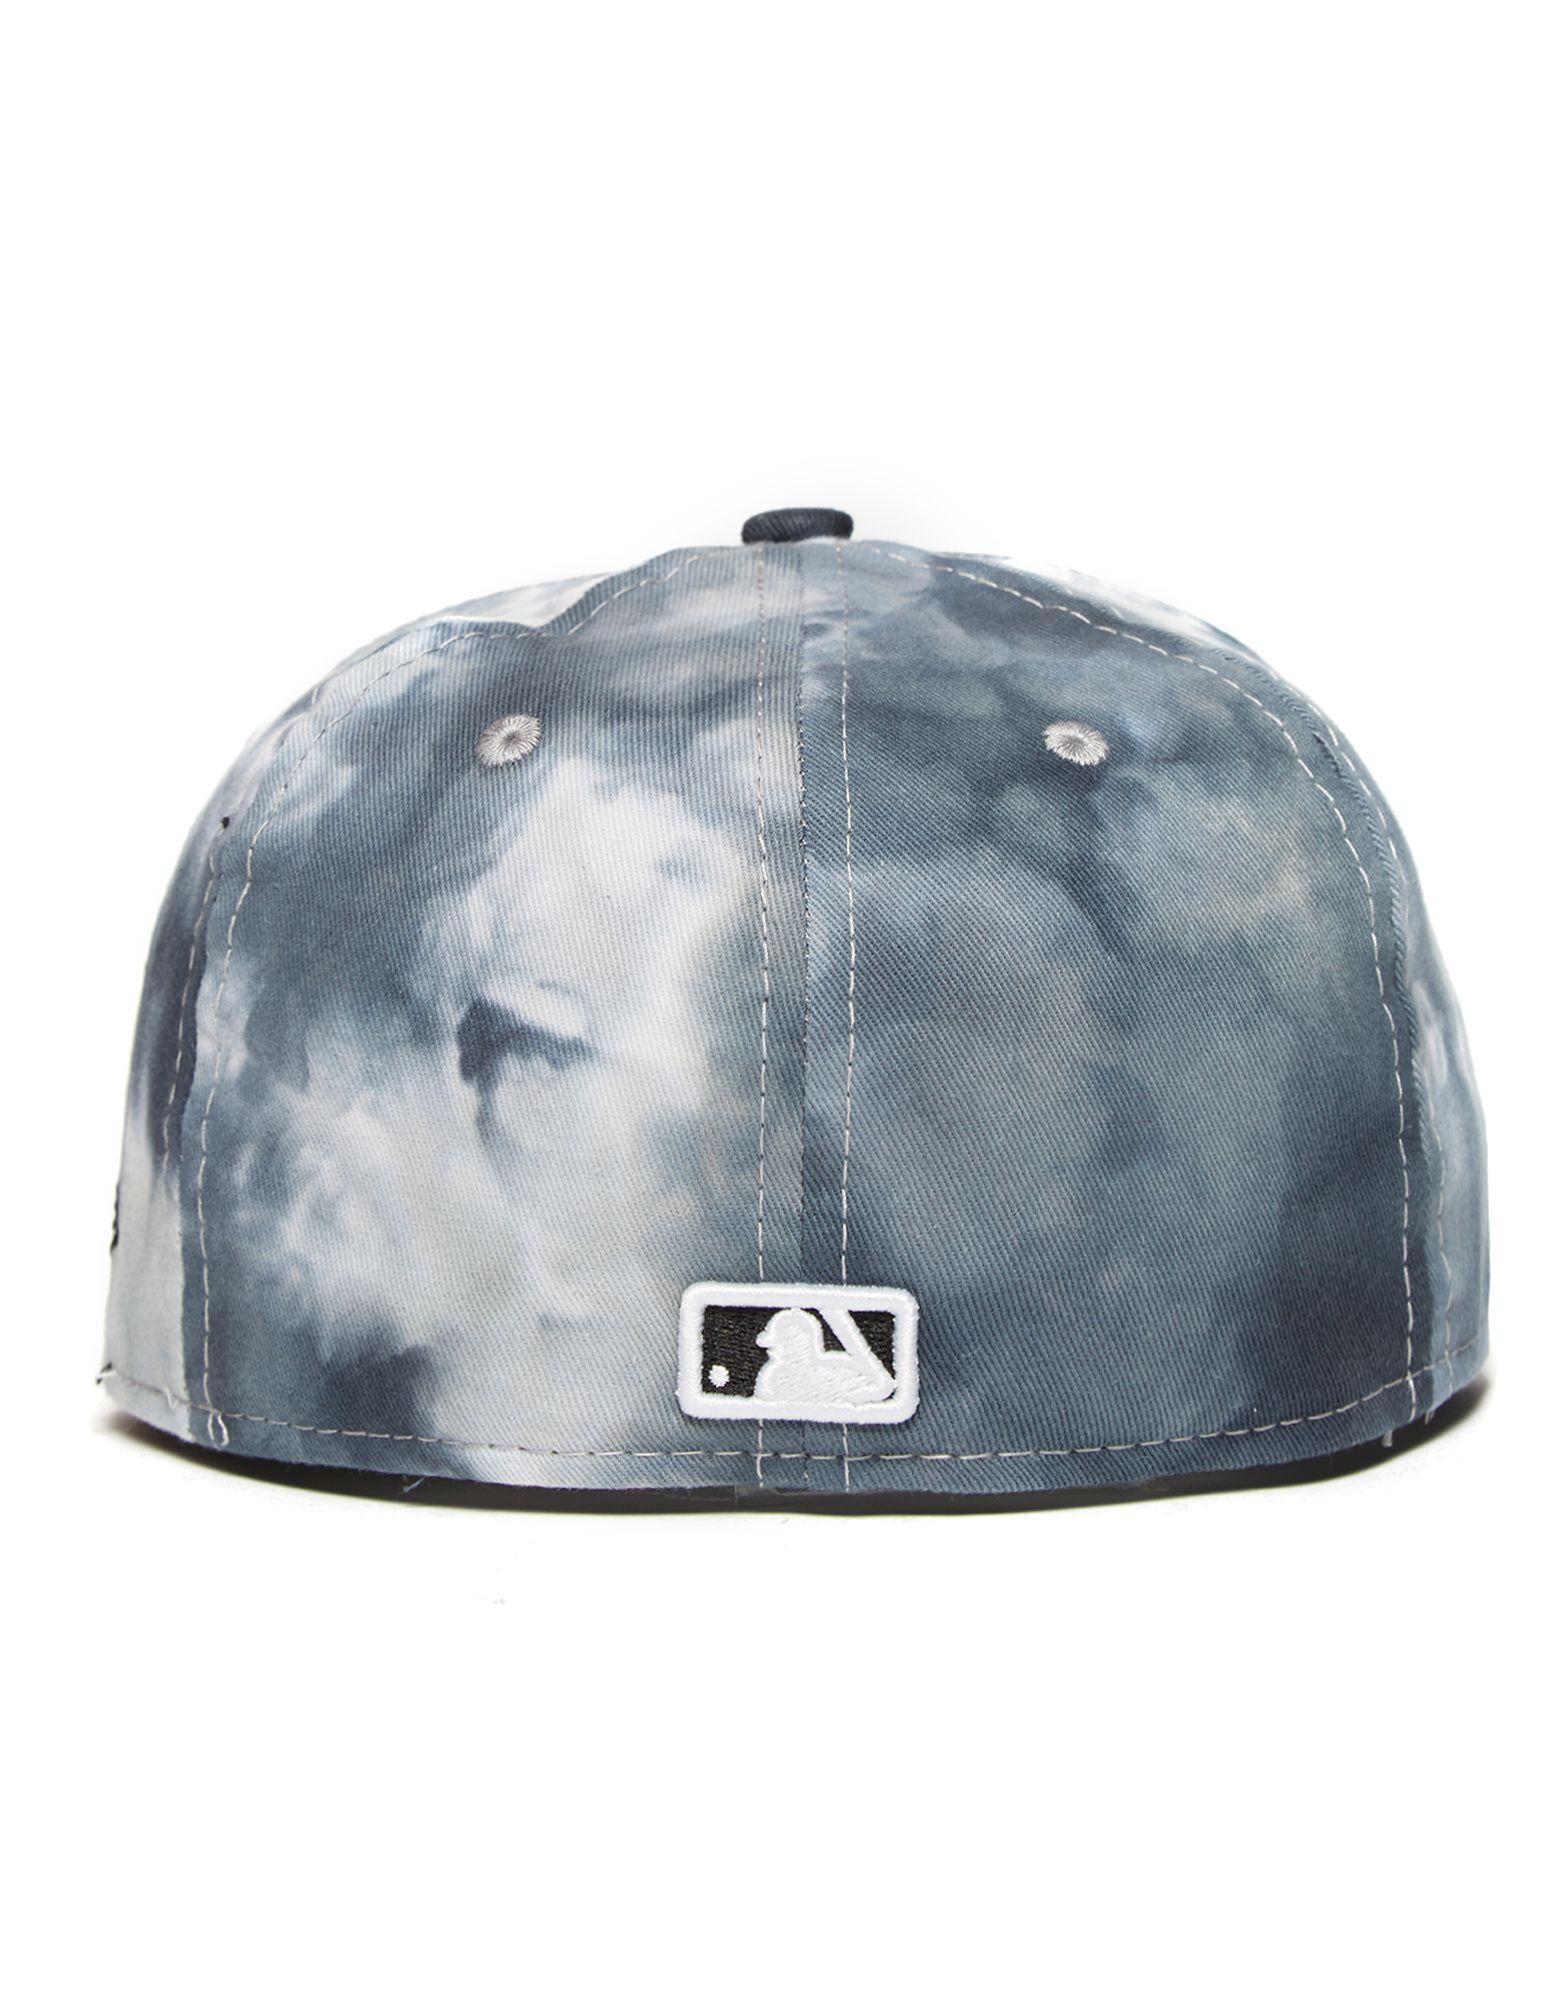 New Era MLB New York Yankees Tie Dye 59FIFTY Fitted Cap